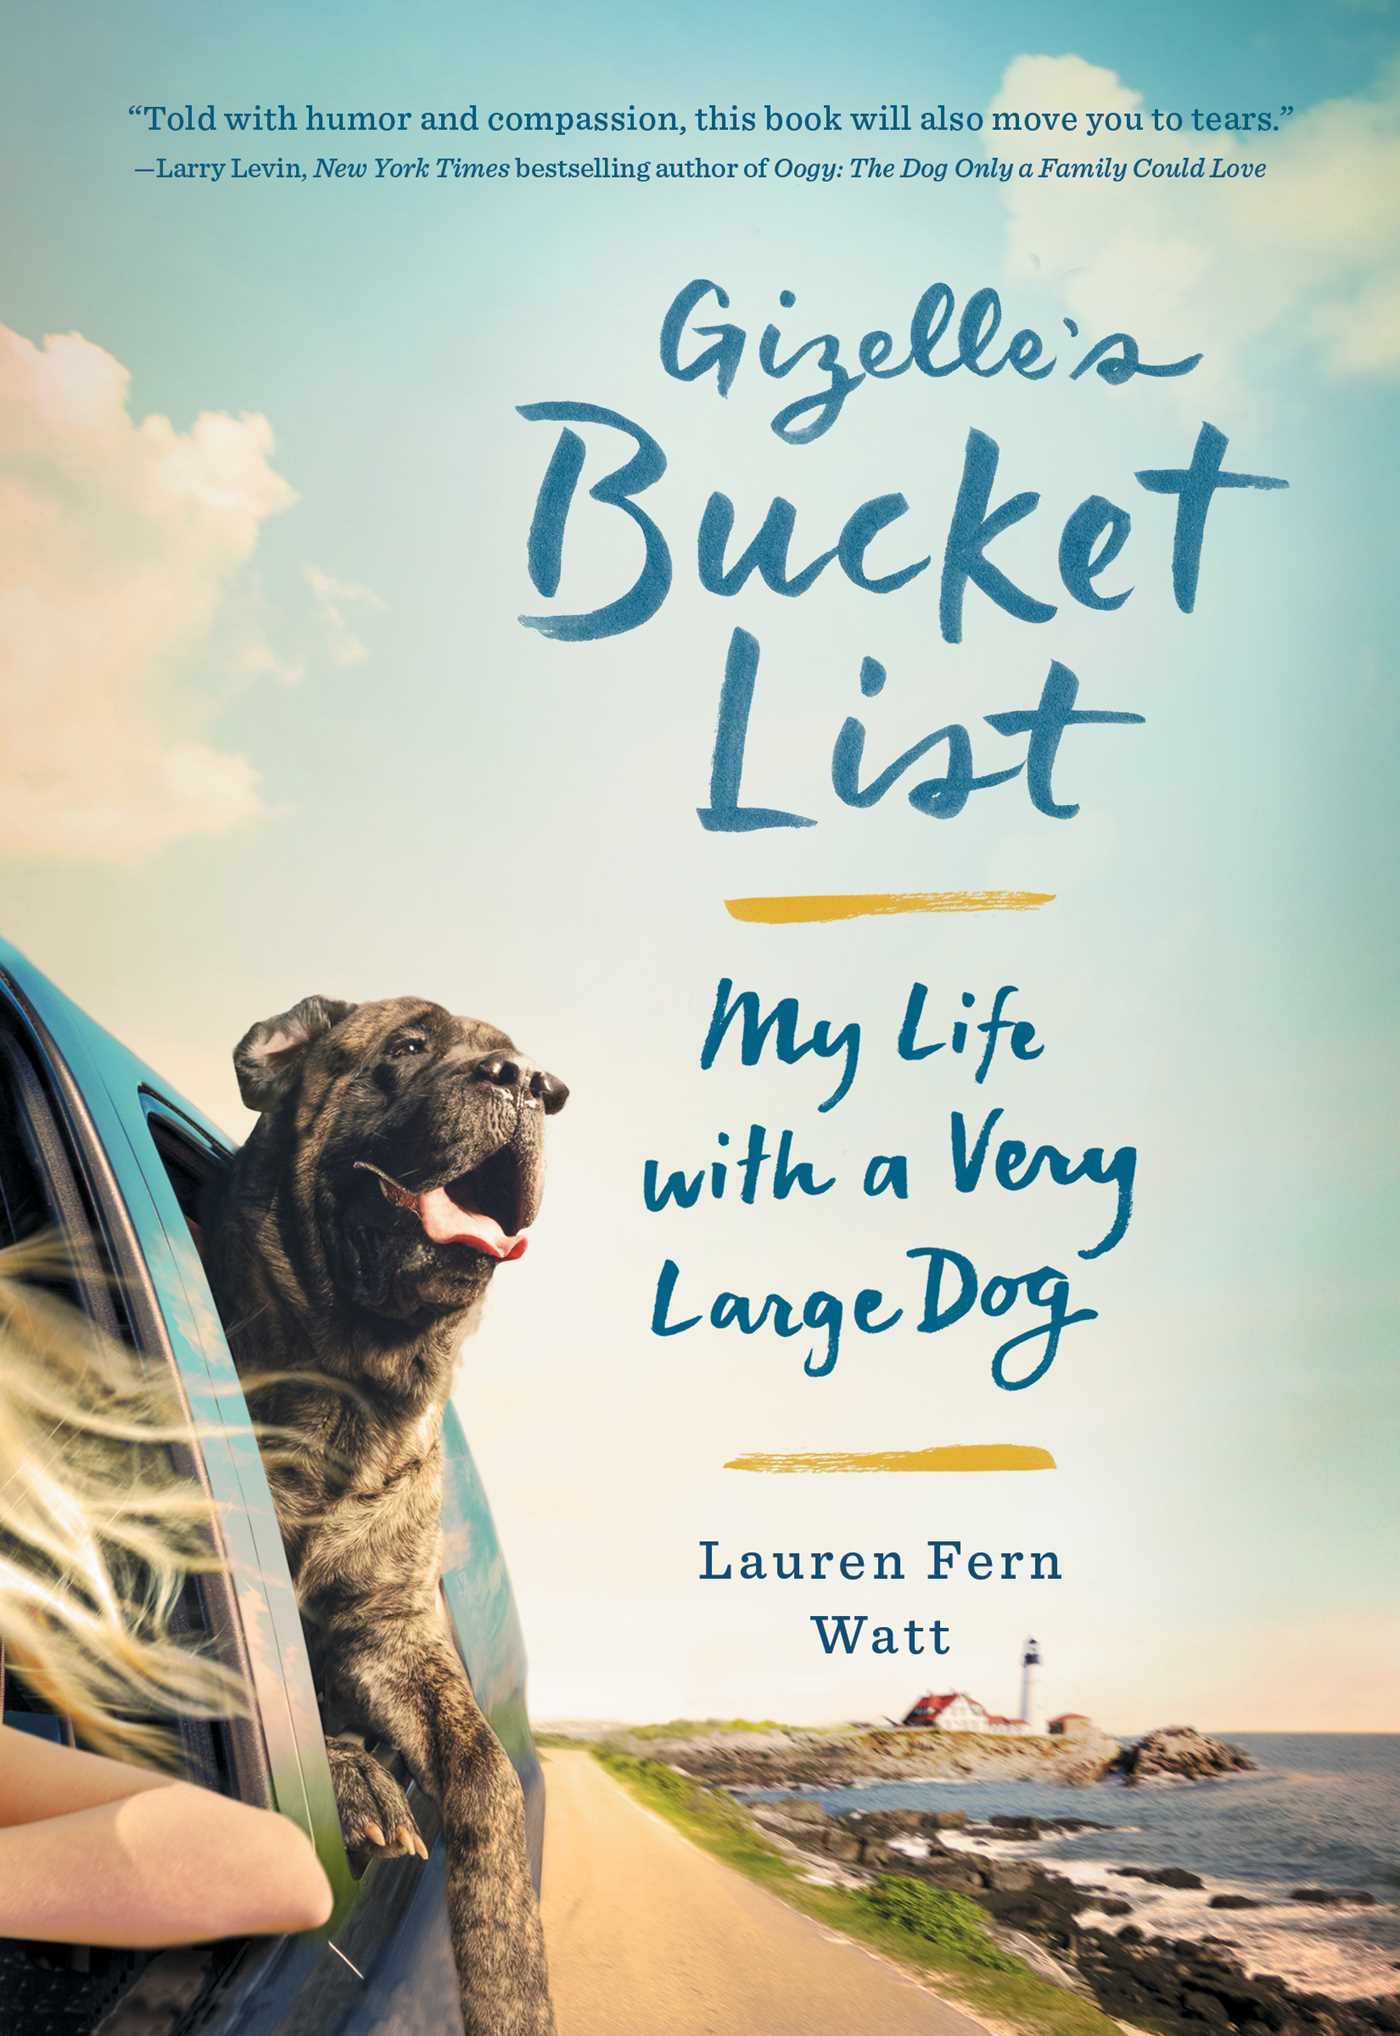 Book Cover Image (jpg): Gizelle's Bucket List